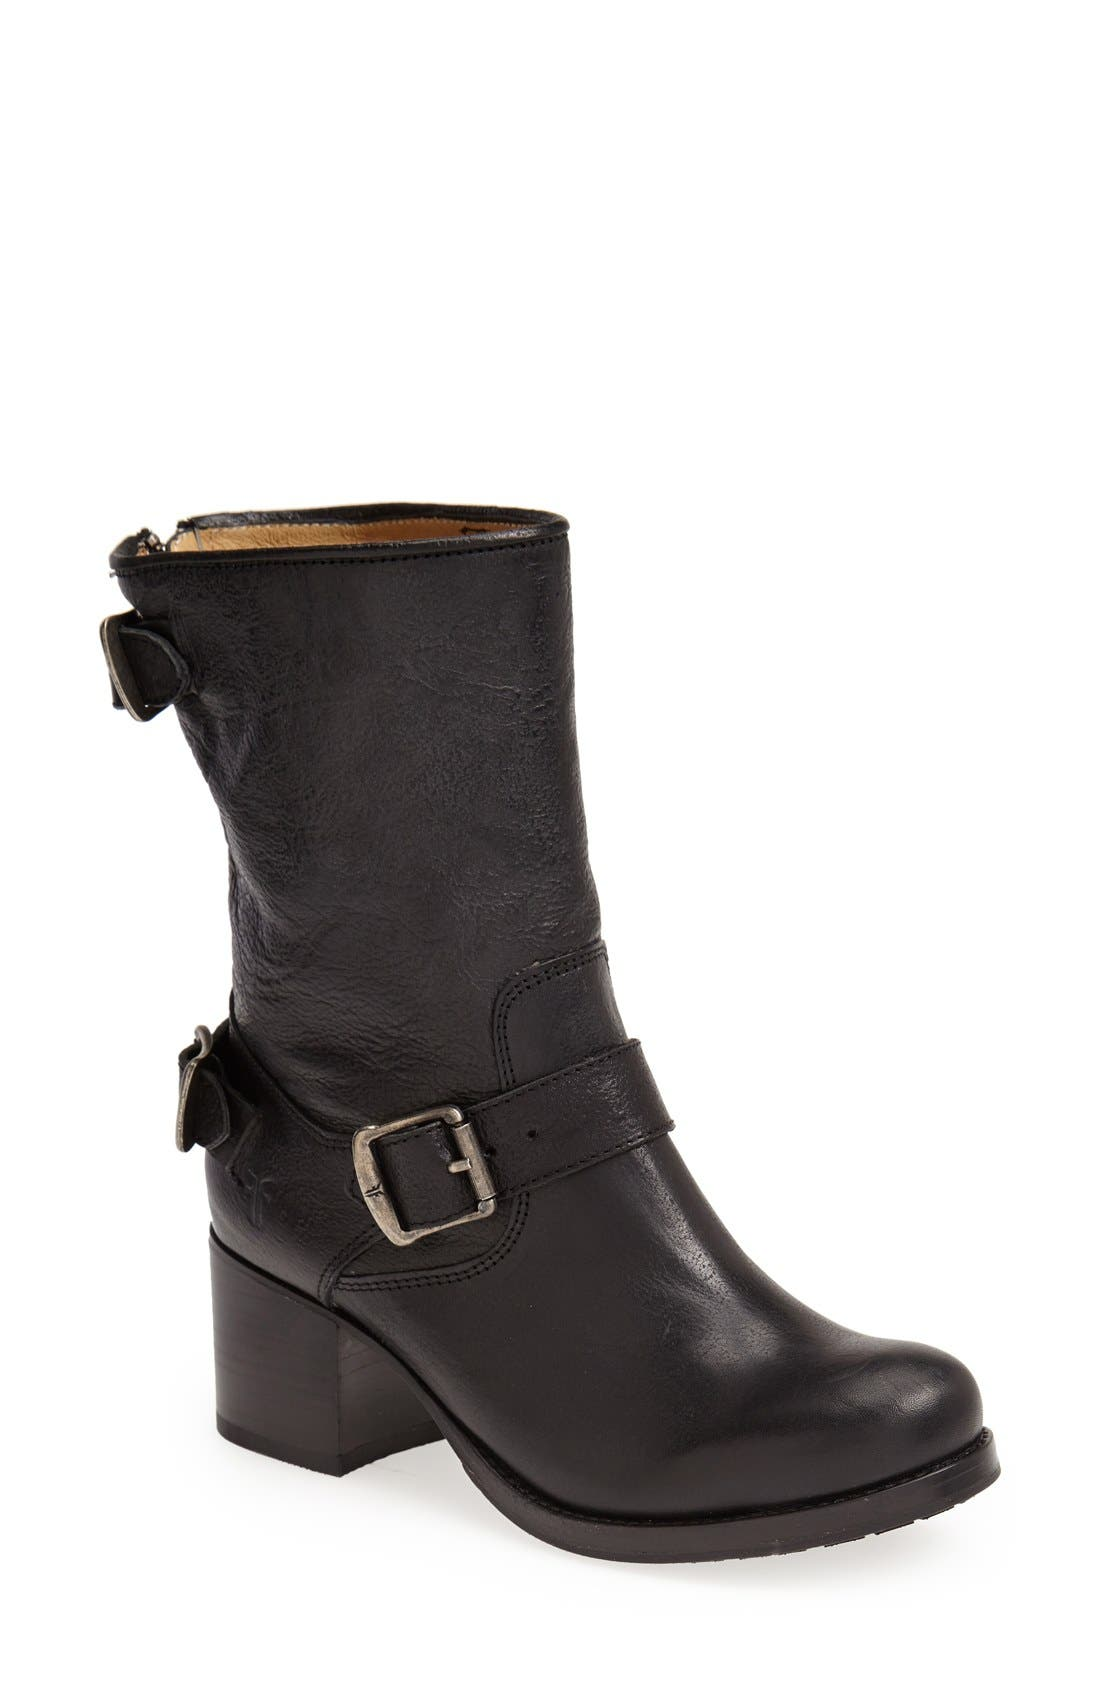 Main Image - Frye 'Vera' Short Boot (Women)